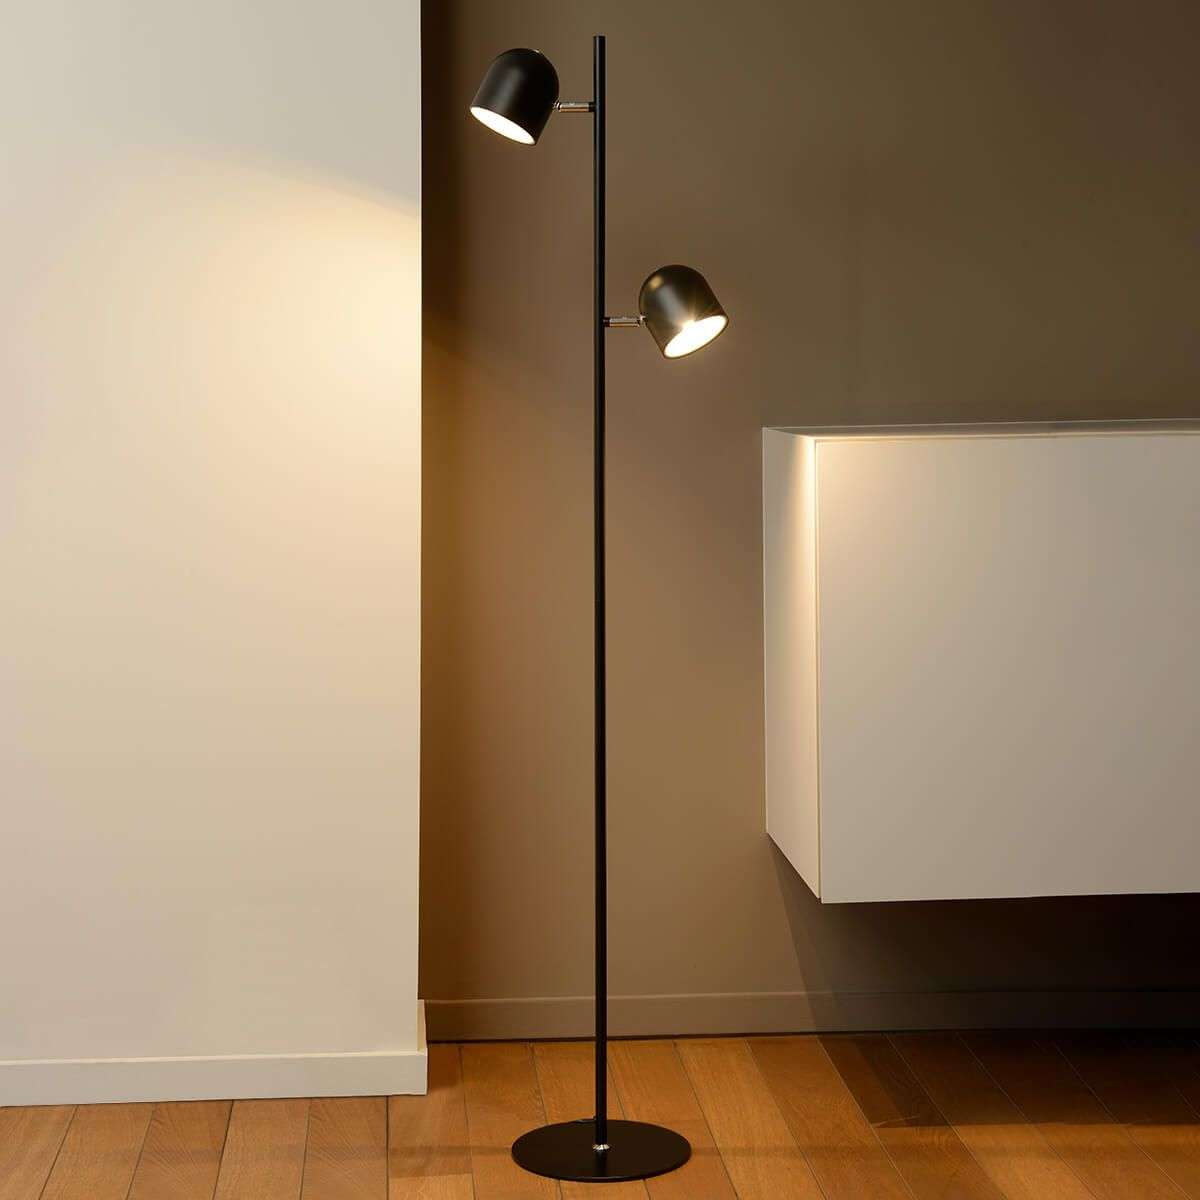 Dimmable led floor lamp skanska in black lights dimmable led floor lamp skanska in black aloadofball Image collections